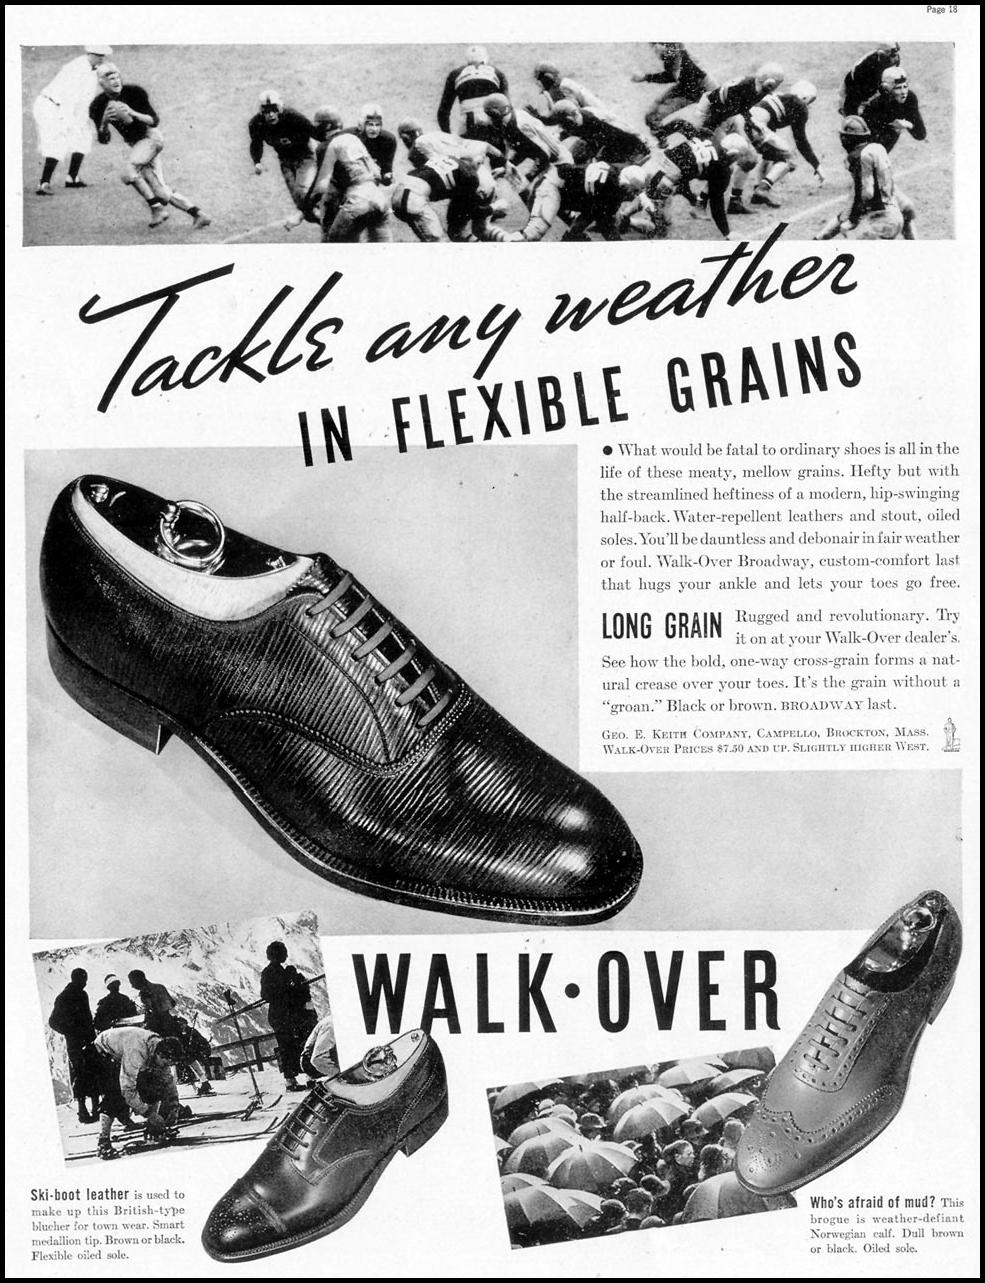 WALK-OVER SHOES LIFE 09/20/1937 p. 18